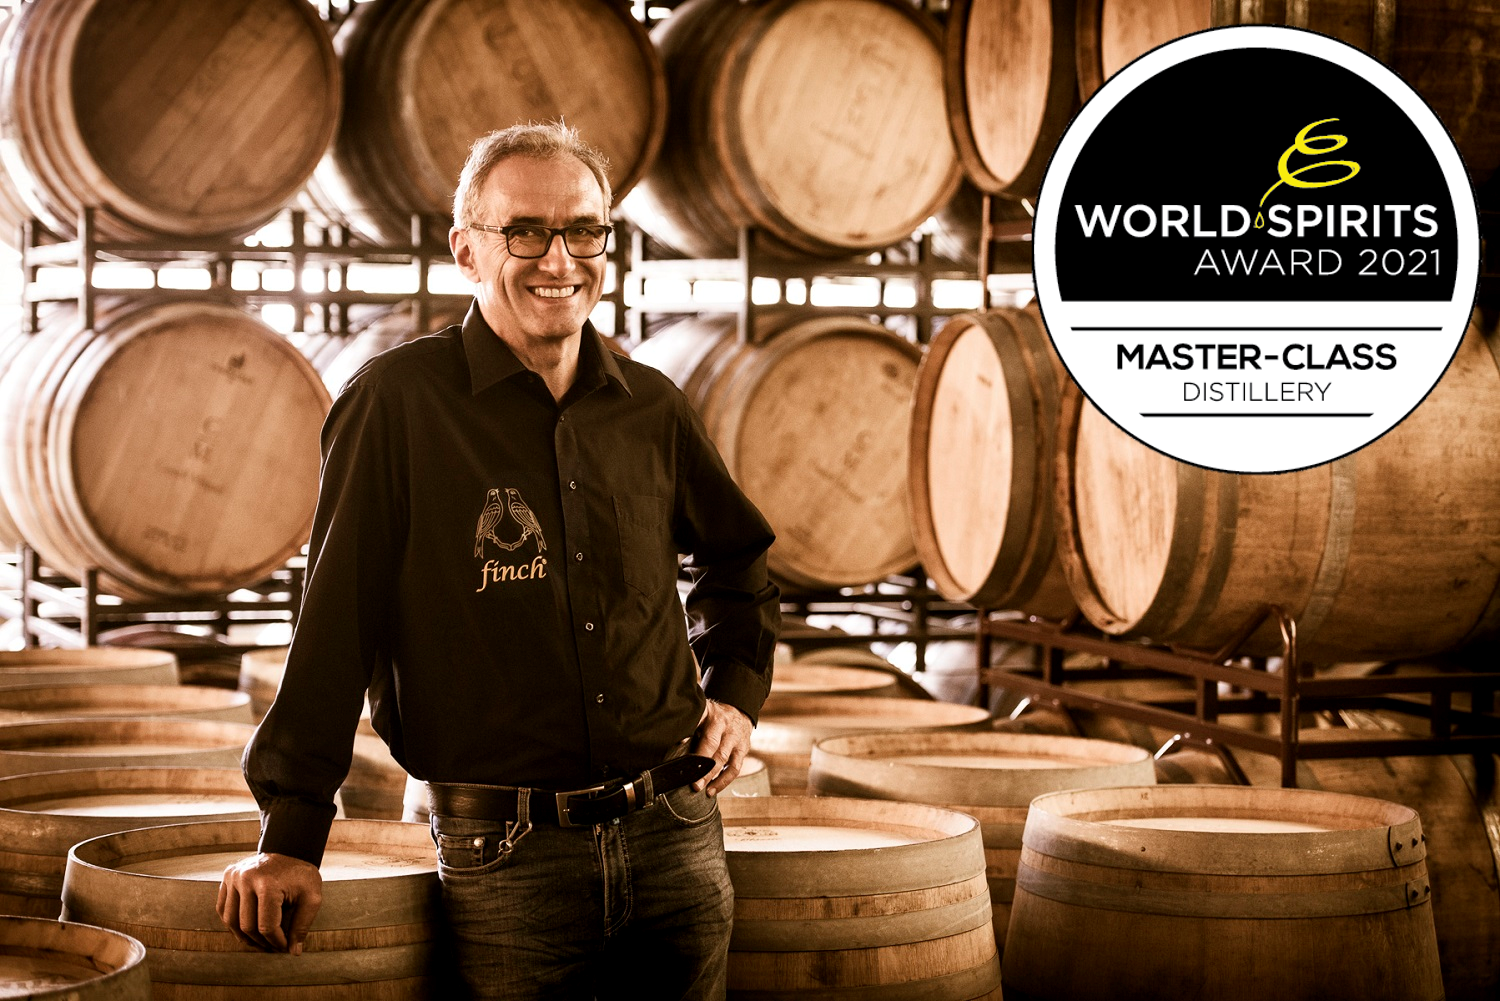 finch® - beste Whiskydestillerie der World Spirits Award 2021